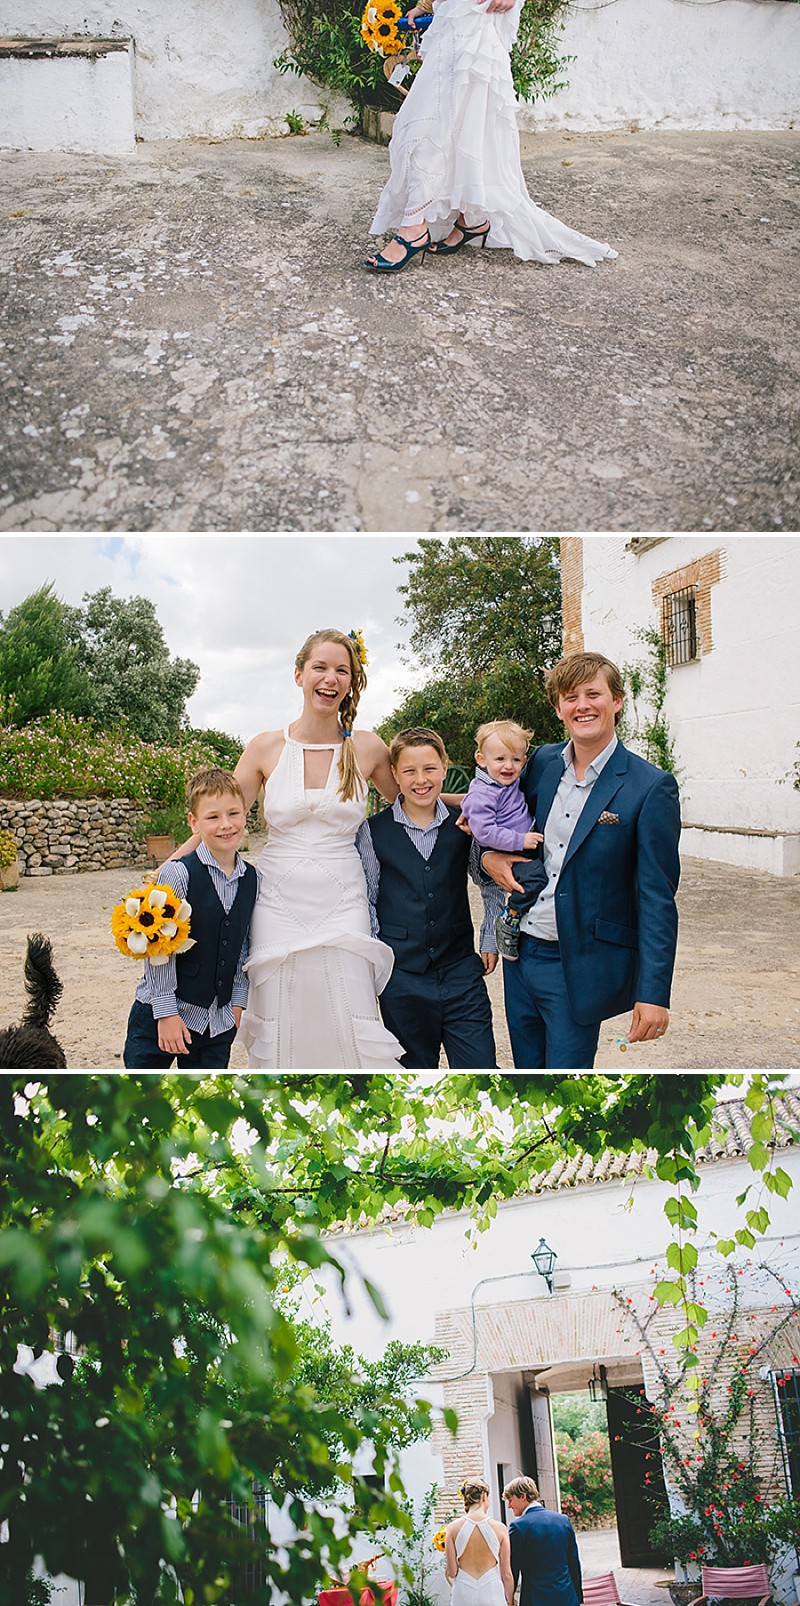 An Intimate Rustic Wedding In Seville Spain With Bride In Temperley Gown And Groom In Navy Reiss Suit With Tan Brogues Images From Zoe Campbell Photography_0008